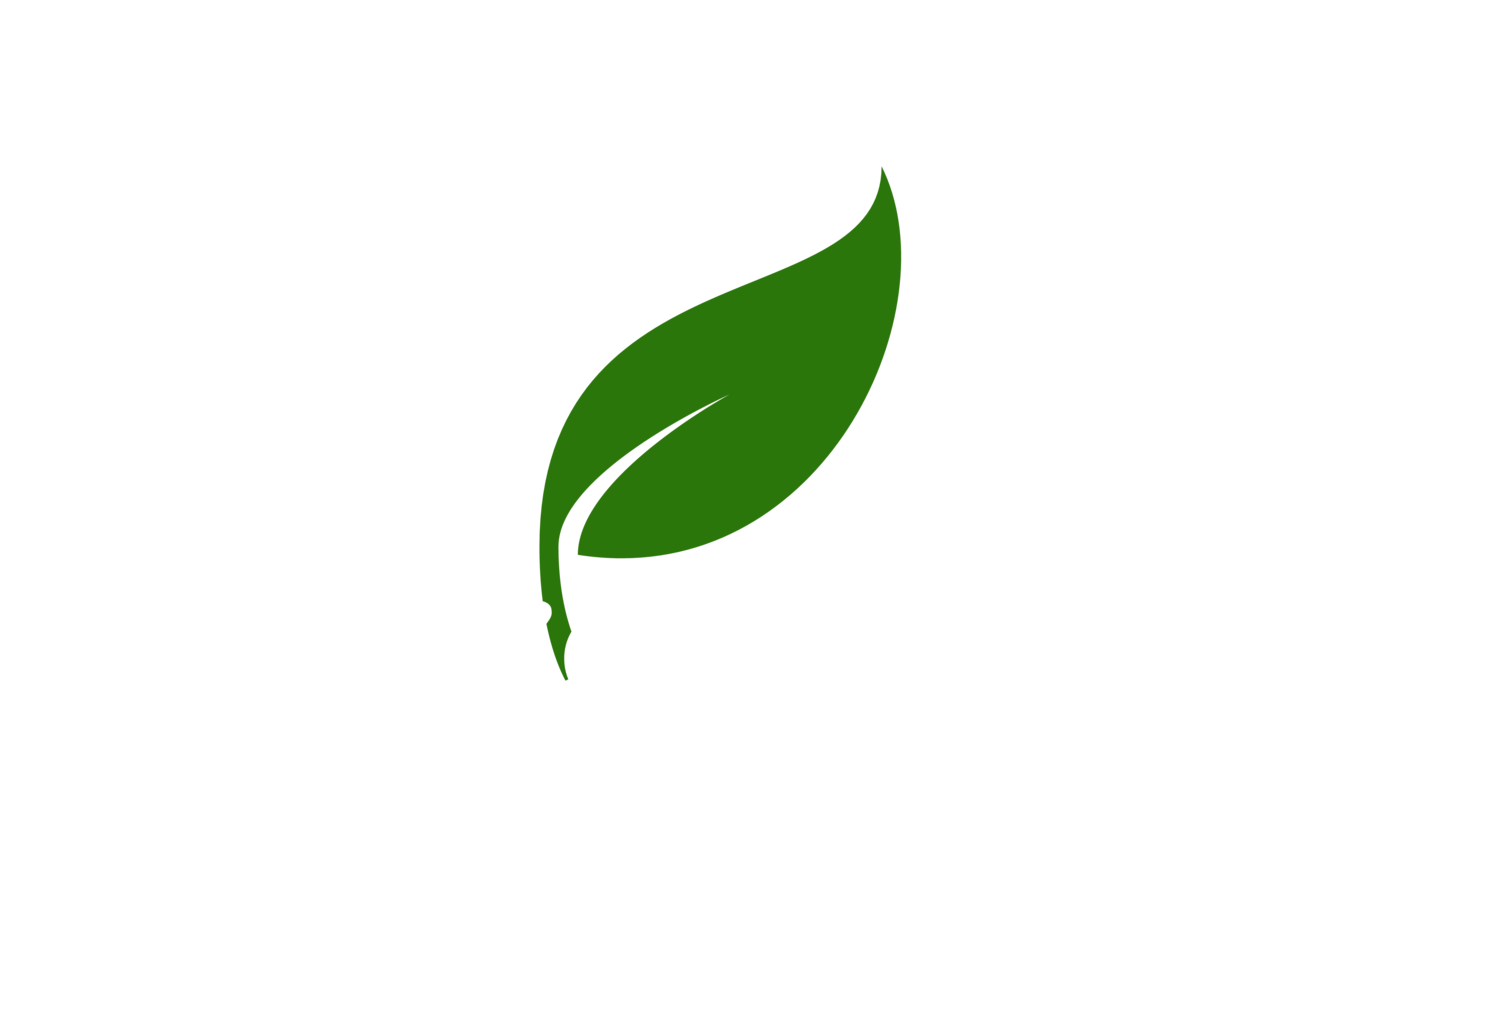 Bosque Vivo